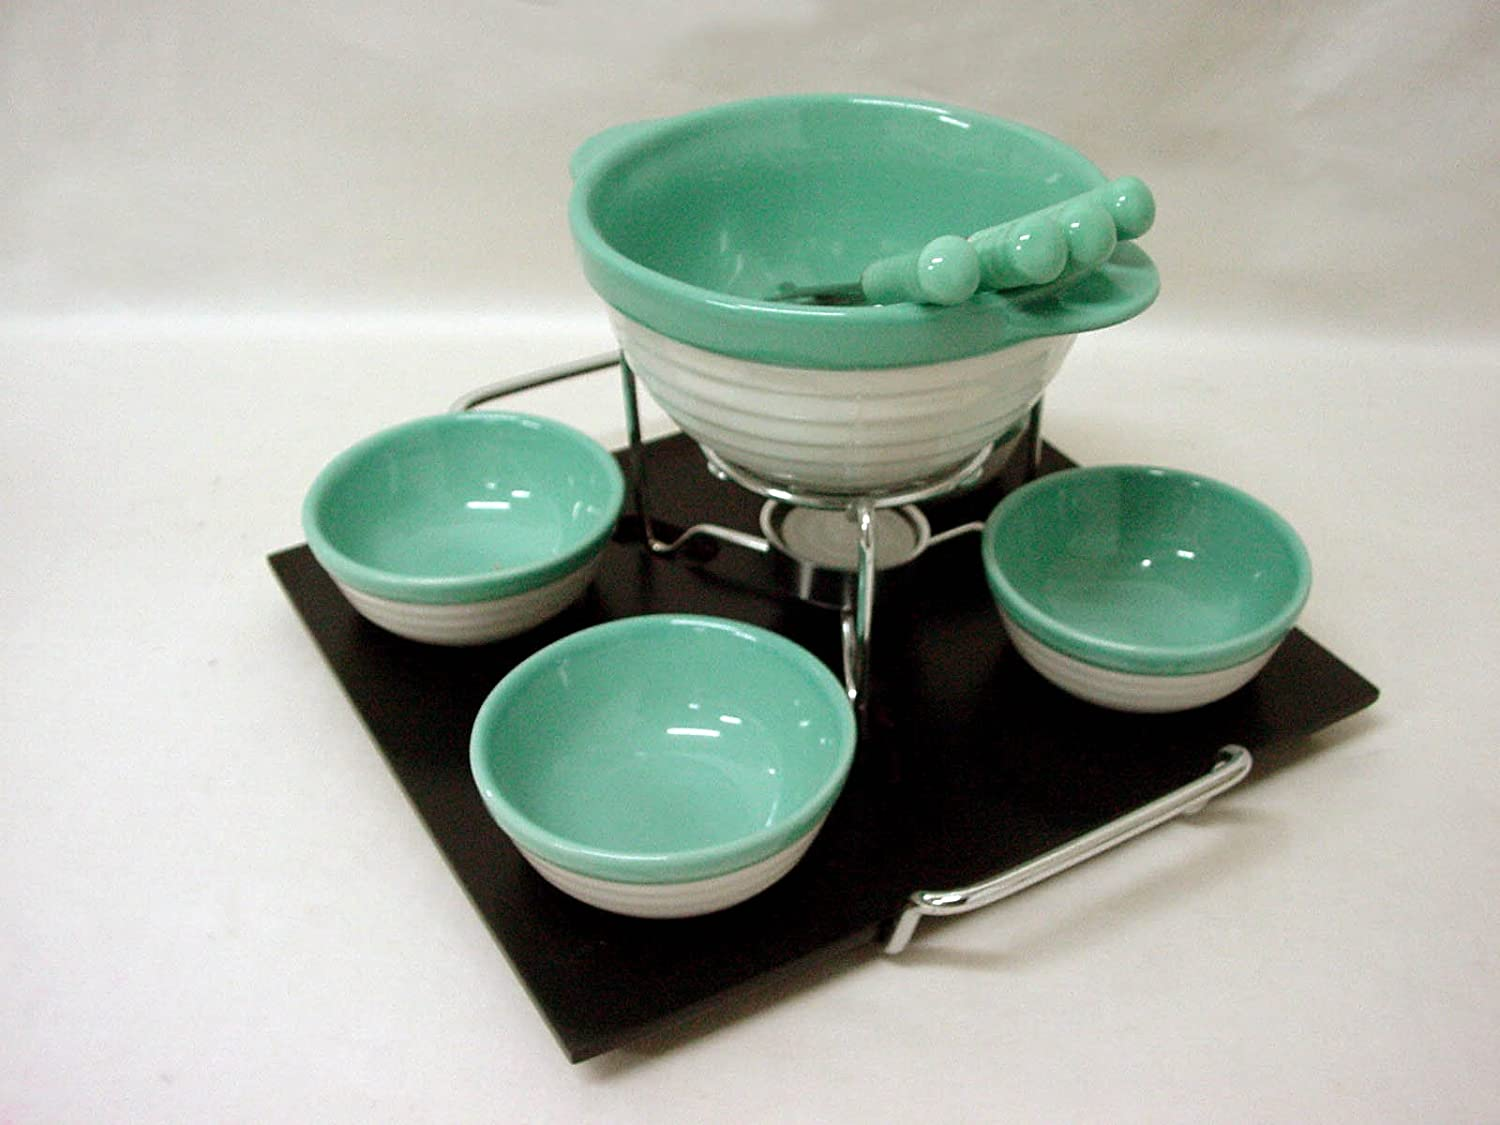 FONDUE PORCELANA CHOCOLATE QUESO CARNE BASE 4 CUENCOS REDONDA VERDE 400ML + 120ML www.working-house.com